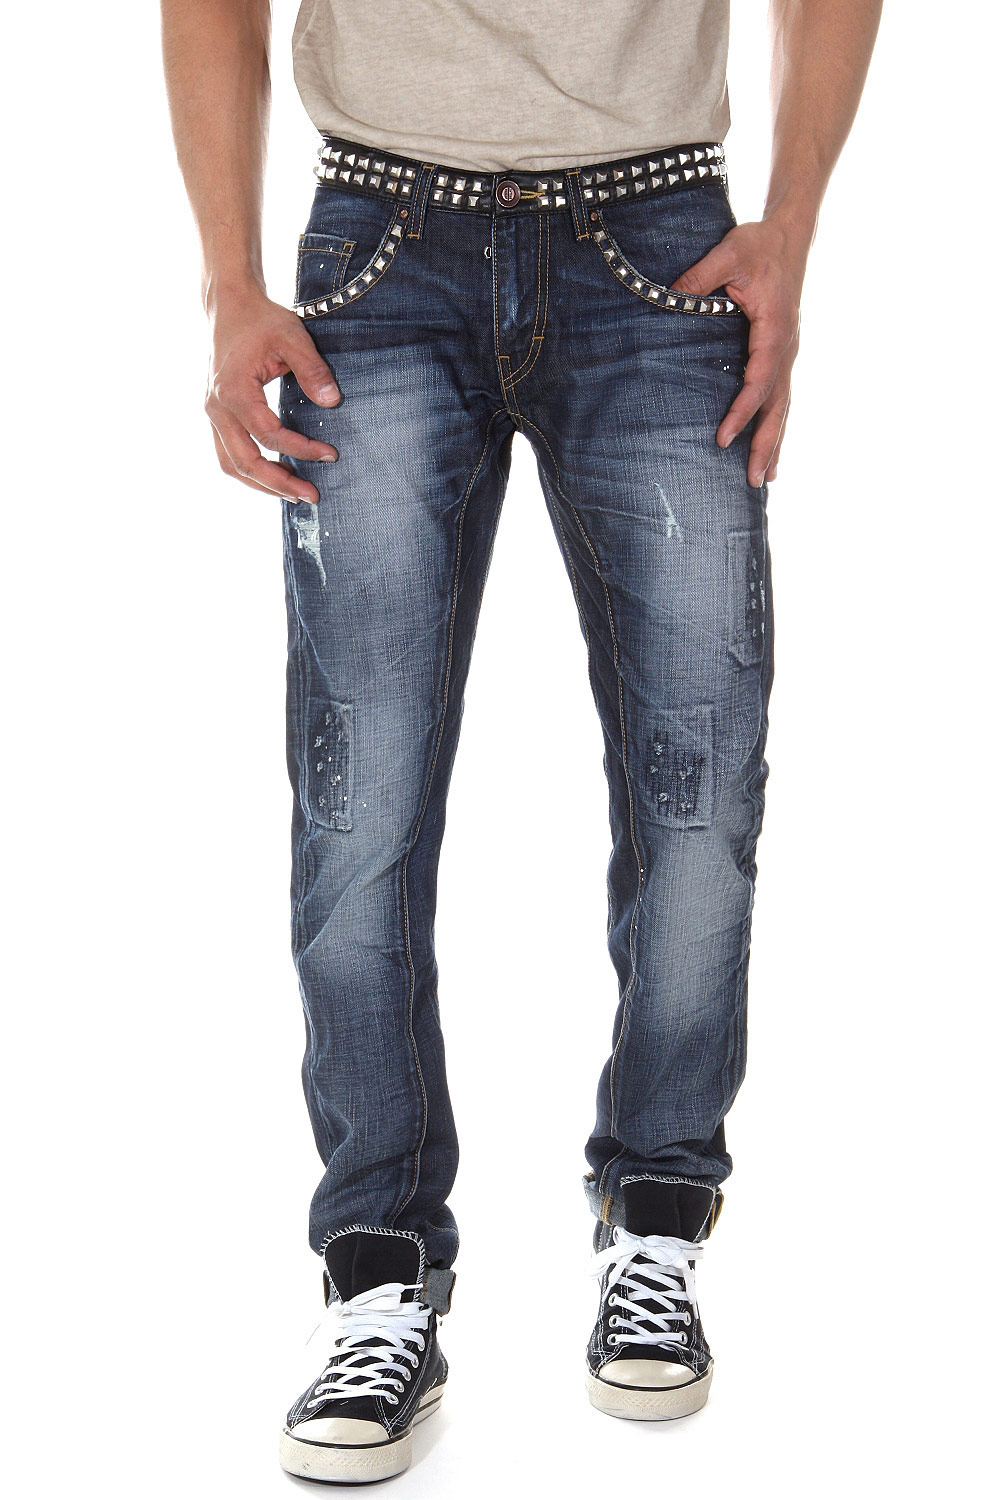 BRIGHT LIMITED EDITION hip jeans at oboy.com